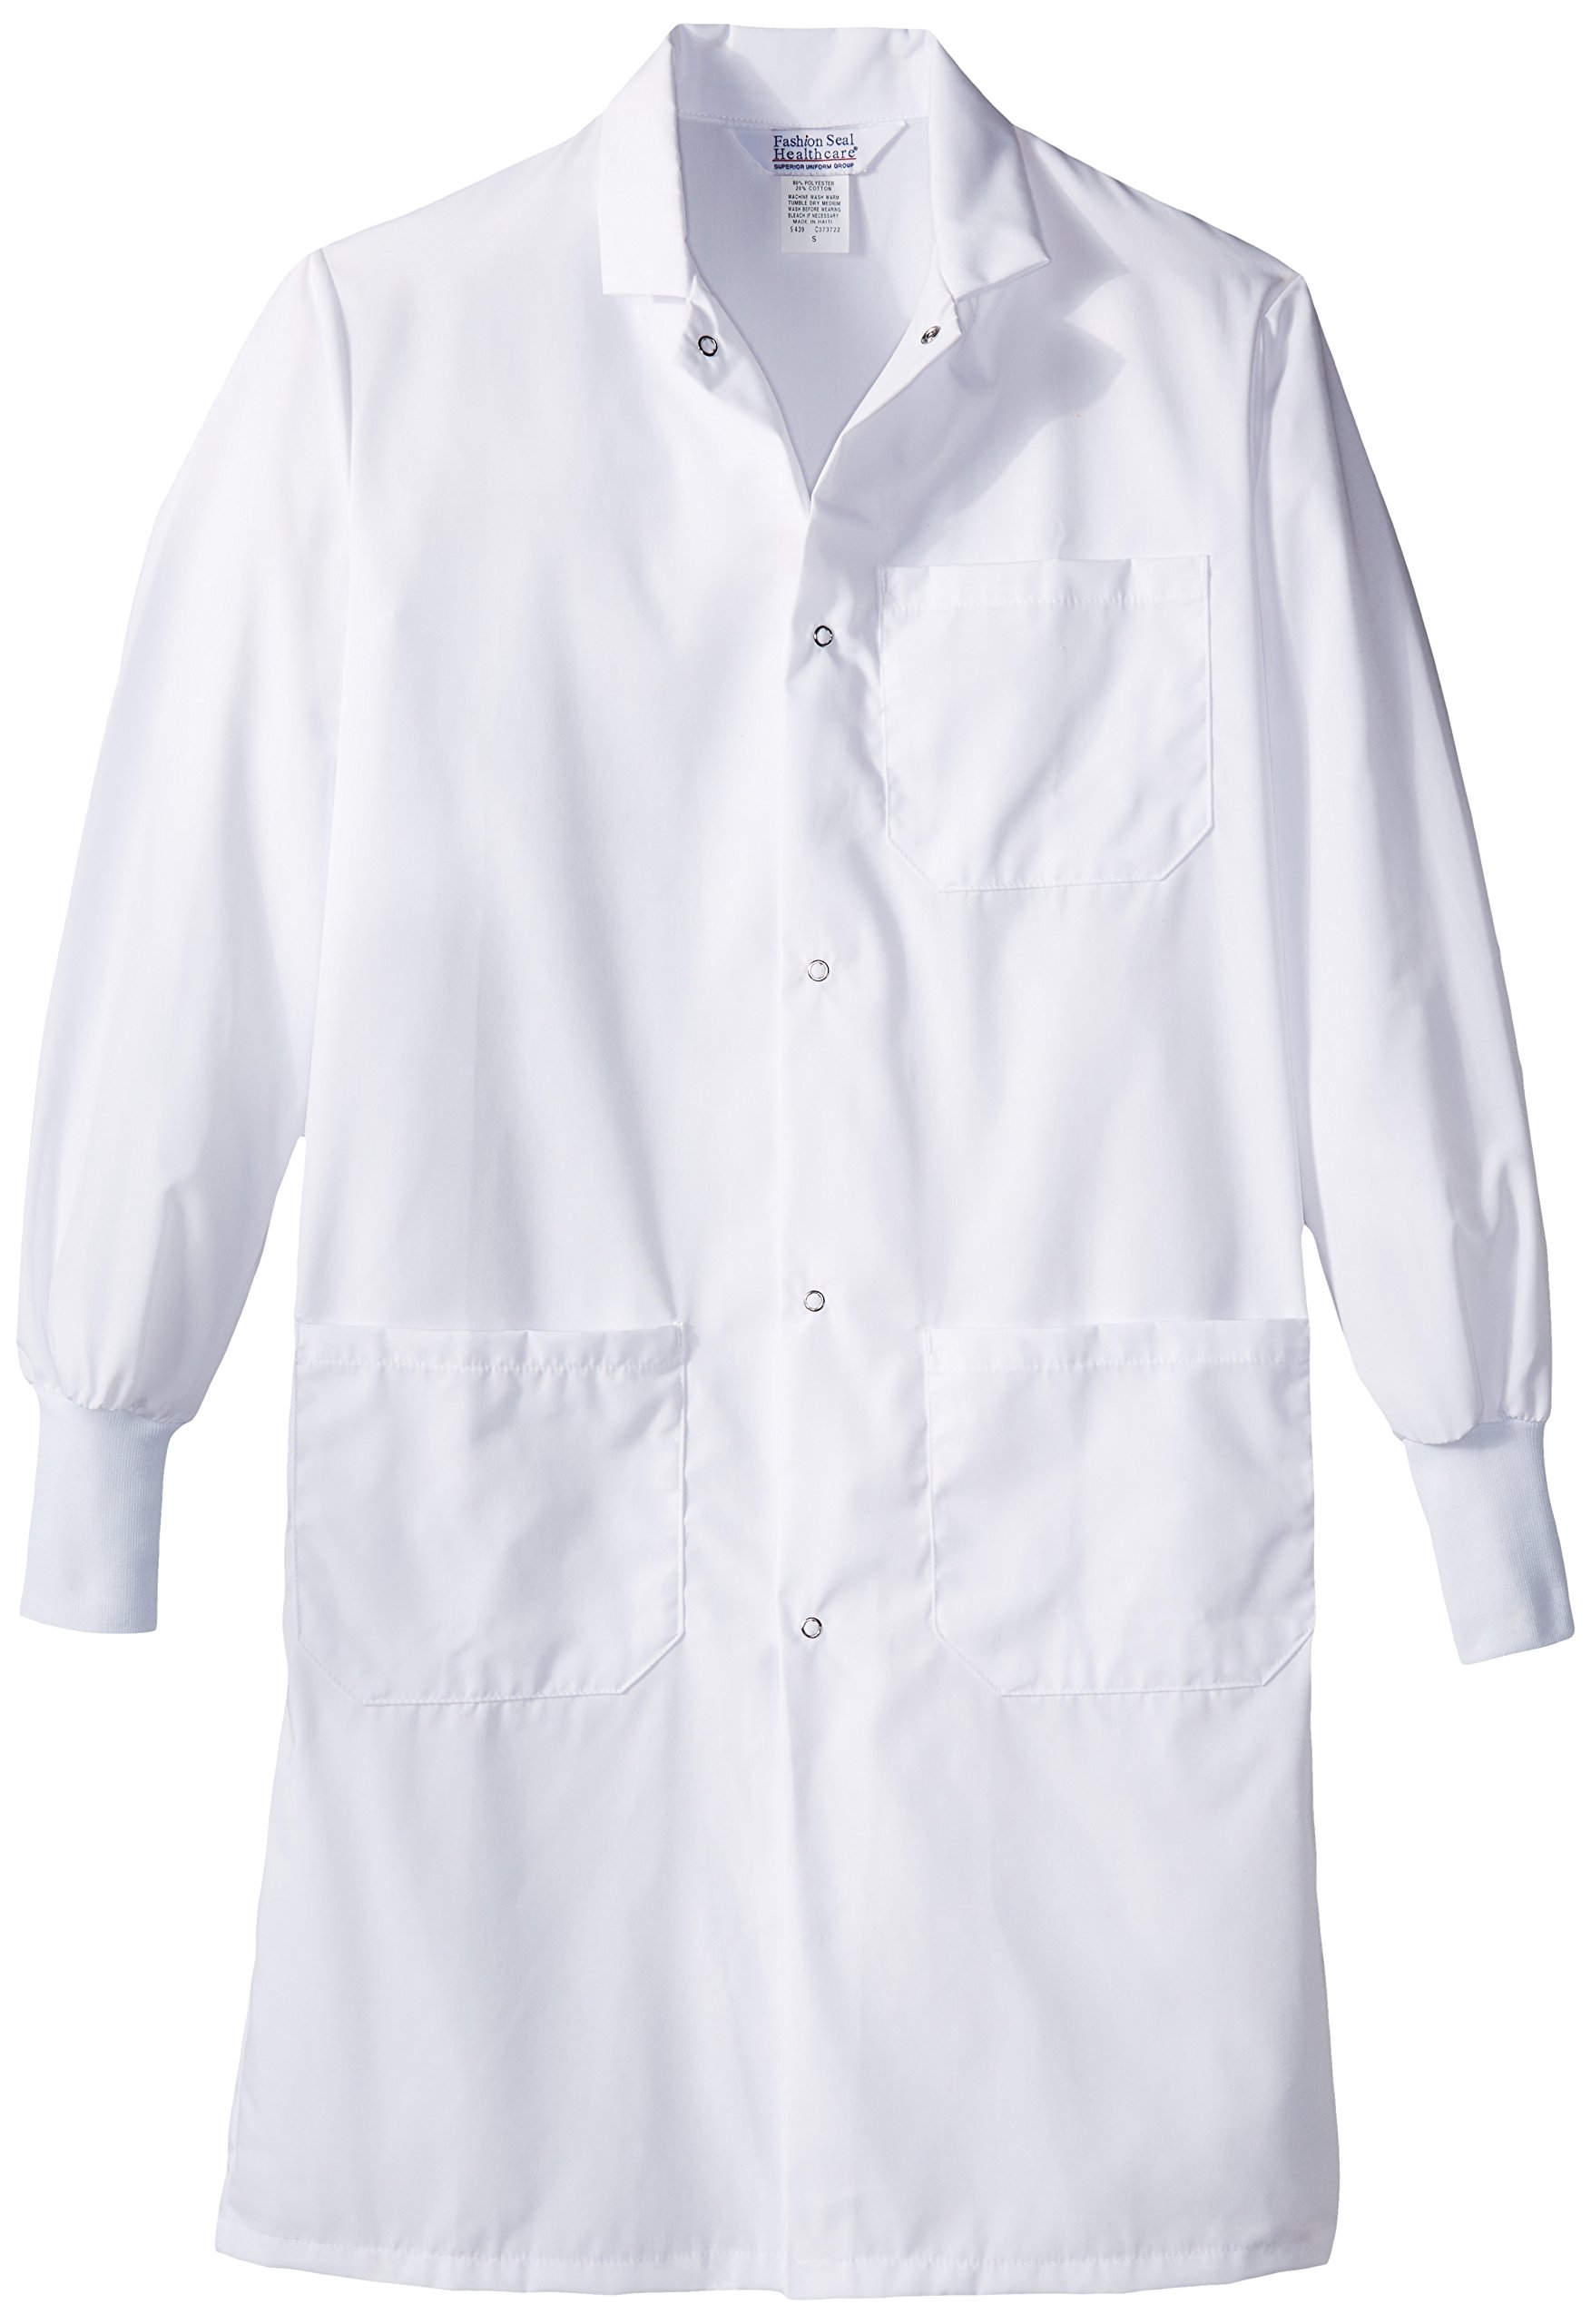 Worklon 439S Polyester/Cotton Lab Coats with Convertible Collar, 41'' Length, Small, White